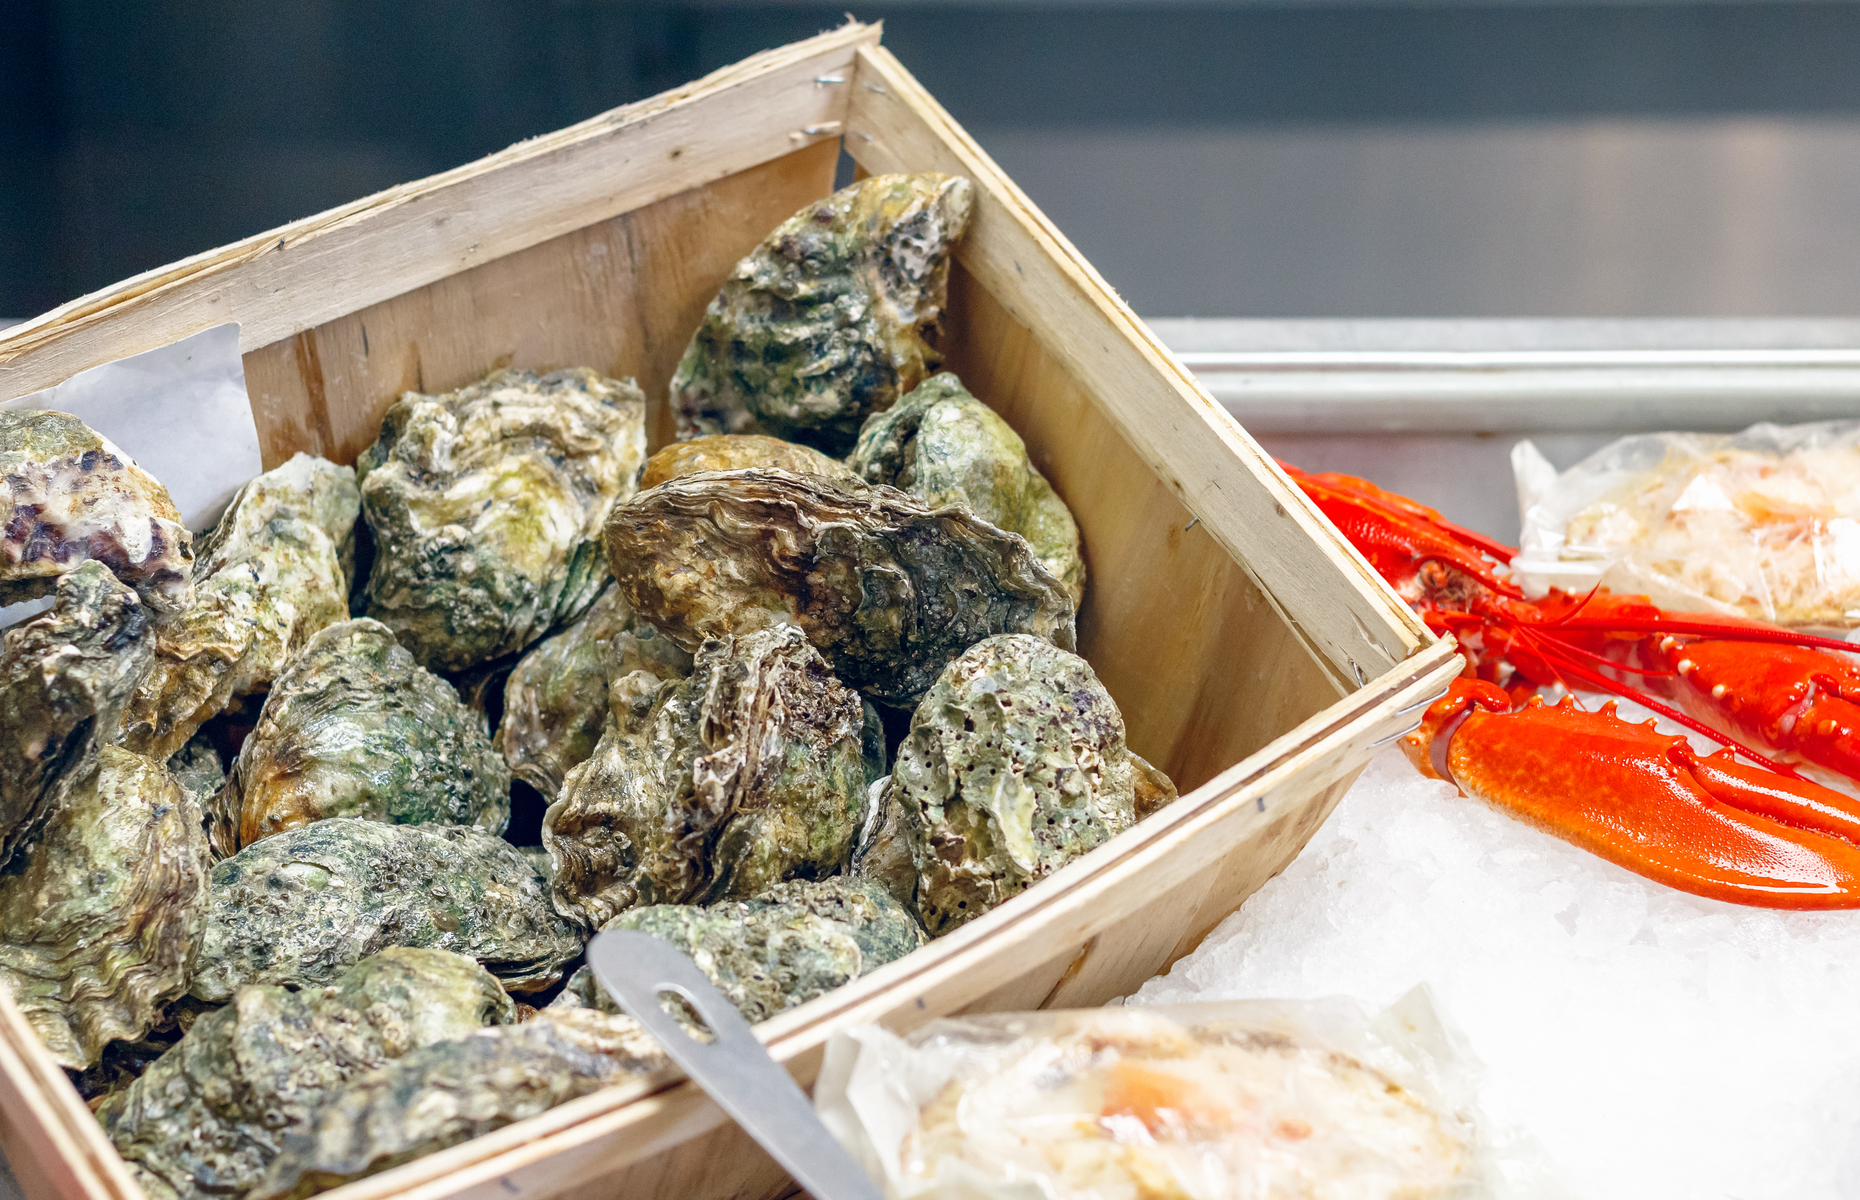 Oysters at market